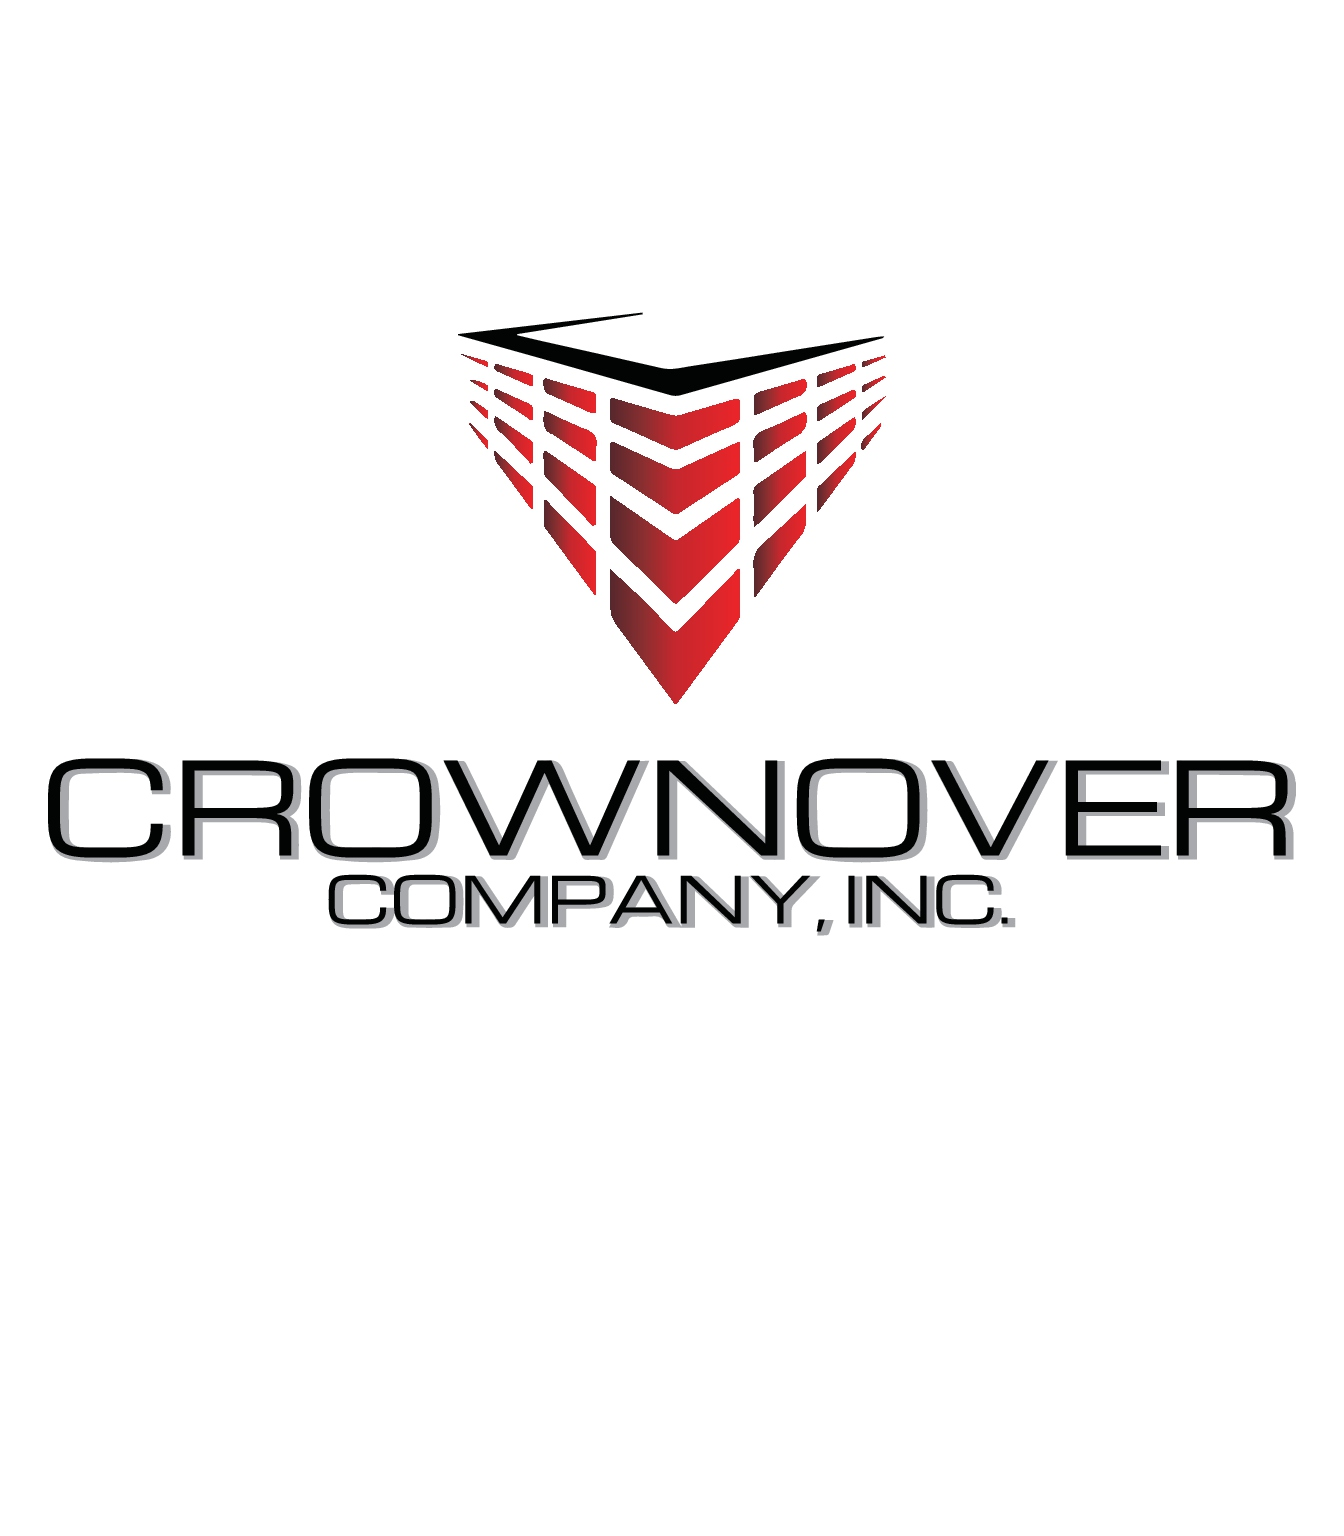 Crownover Company Inc